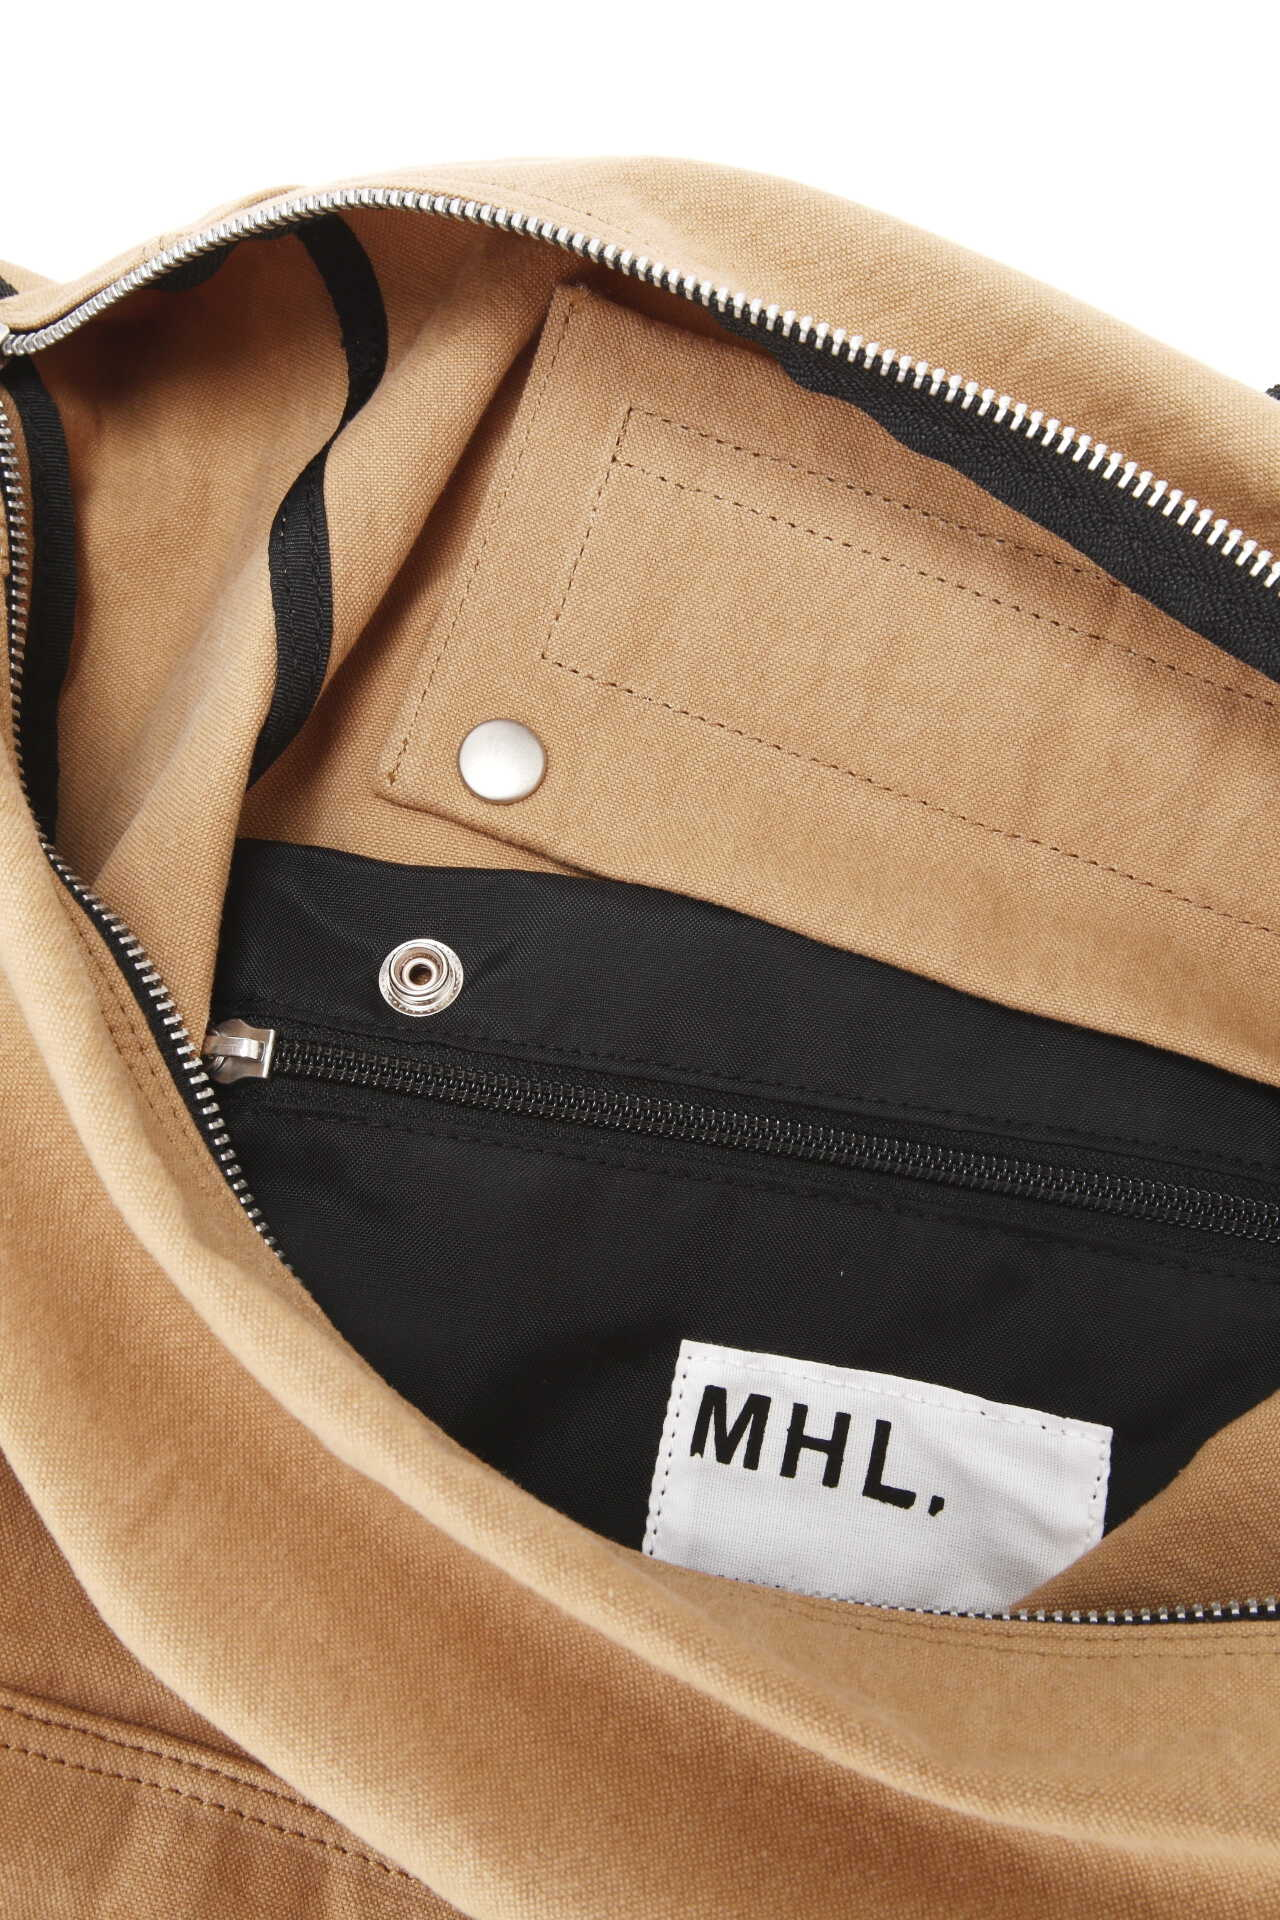 WASHED COTTON CANVAS(MHL SHOP限定)12